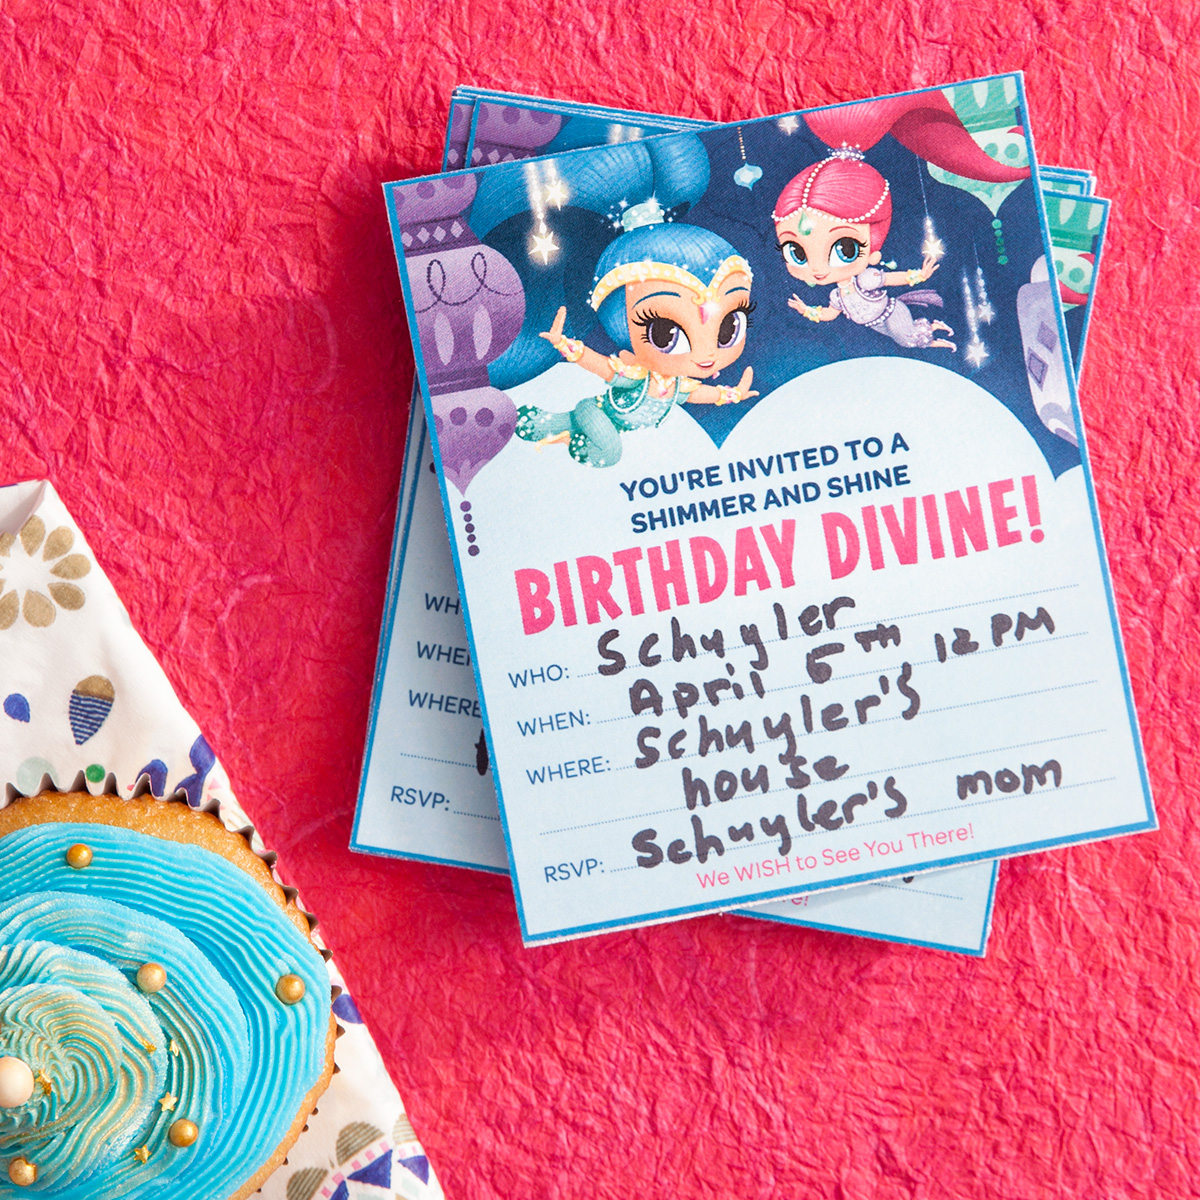 Shimmer and Shine Birthday Invitations